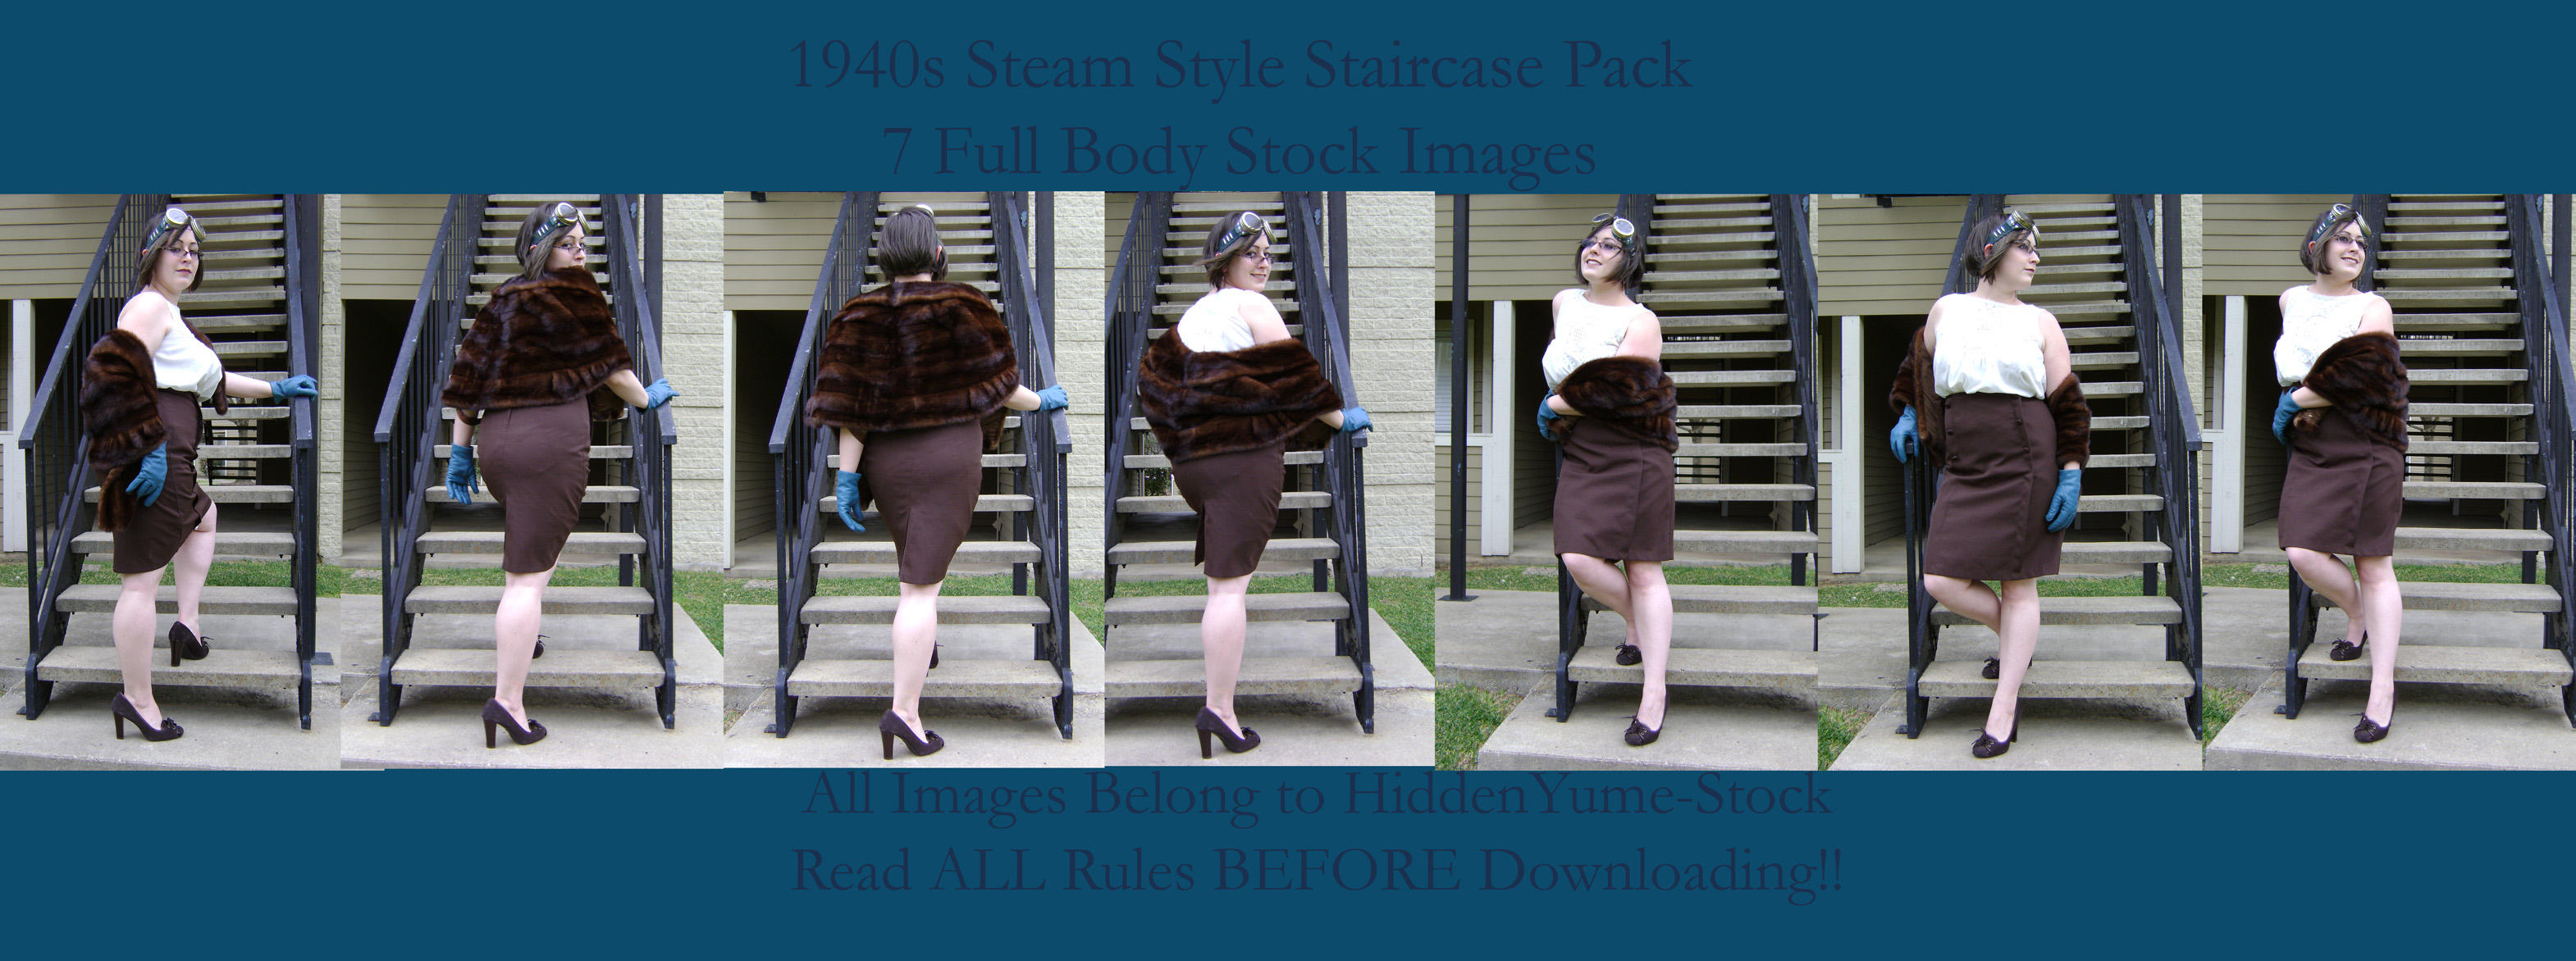 1940s SteamStyle Staircase by HiddenYume-stock